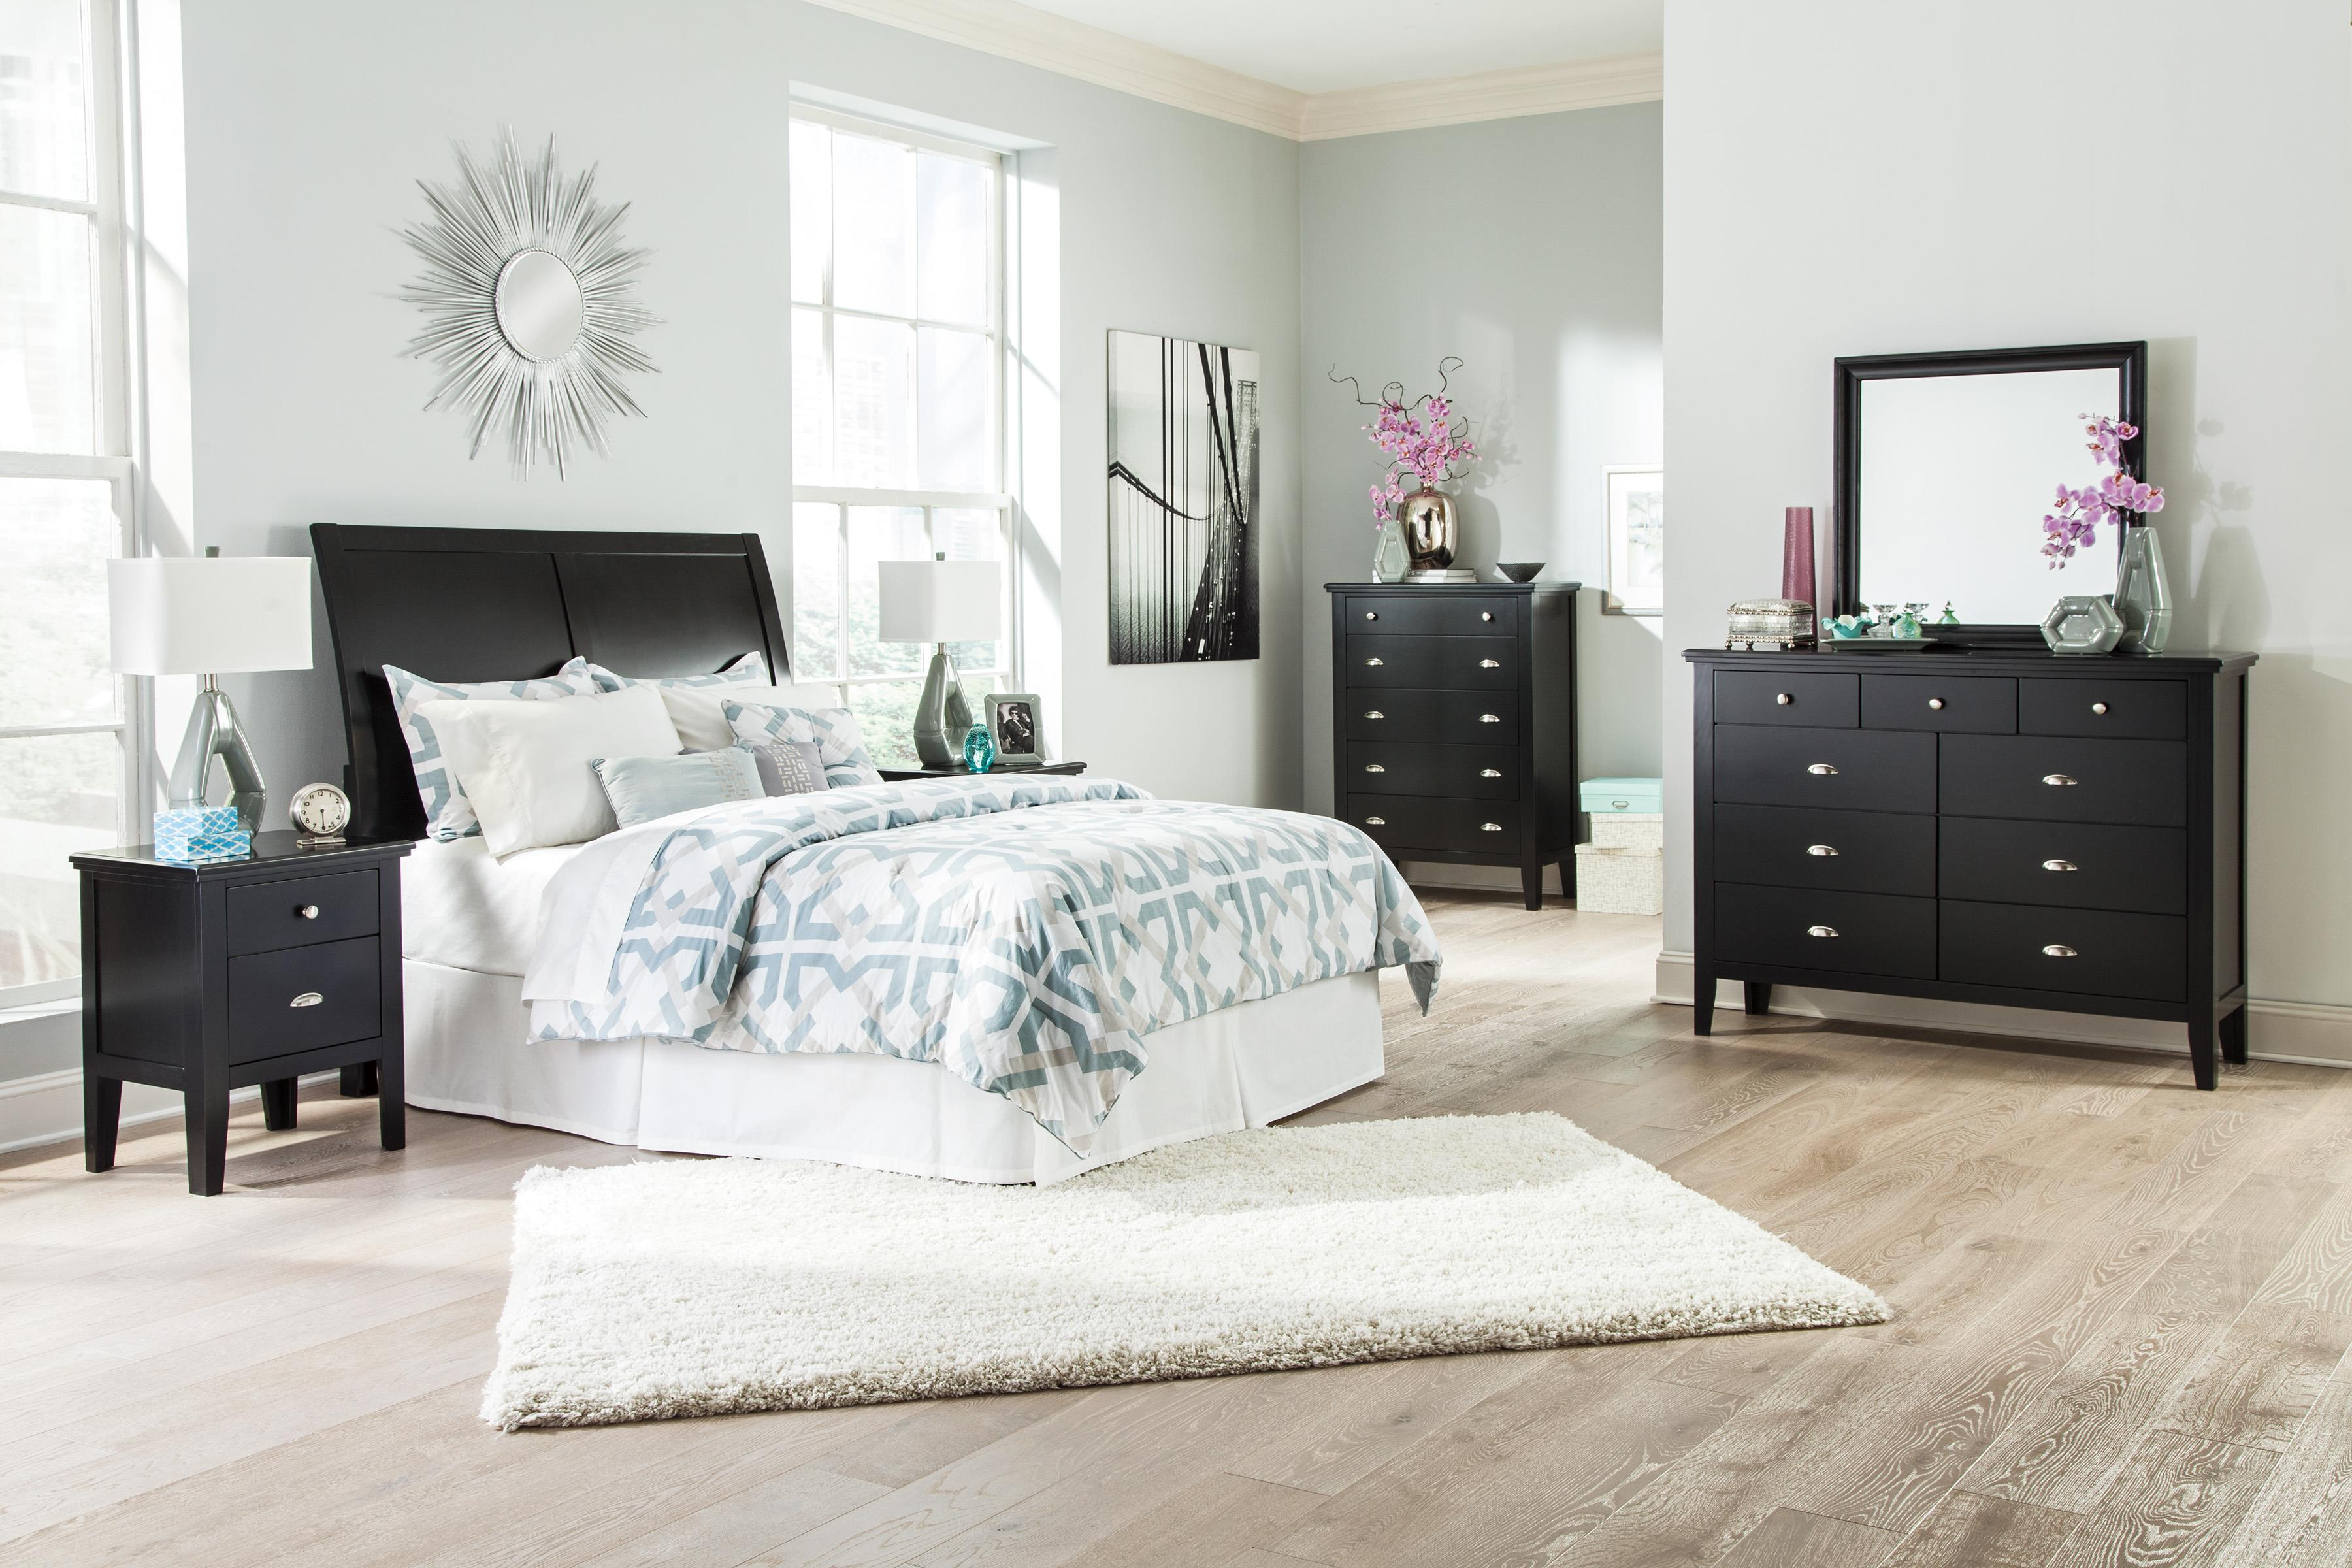 Signature Design by Ashley Braflin Queen Bedroom Group - Item Number: B591 Q Bedroom Group 2